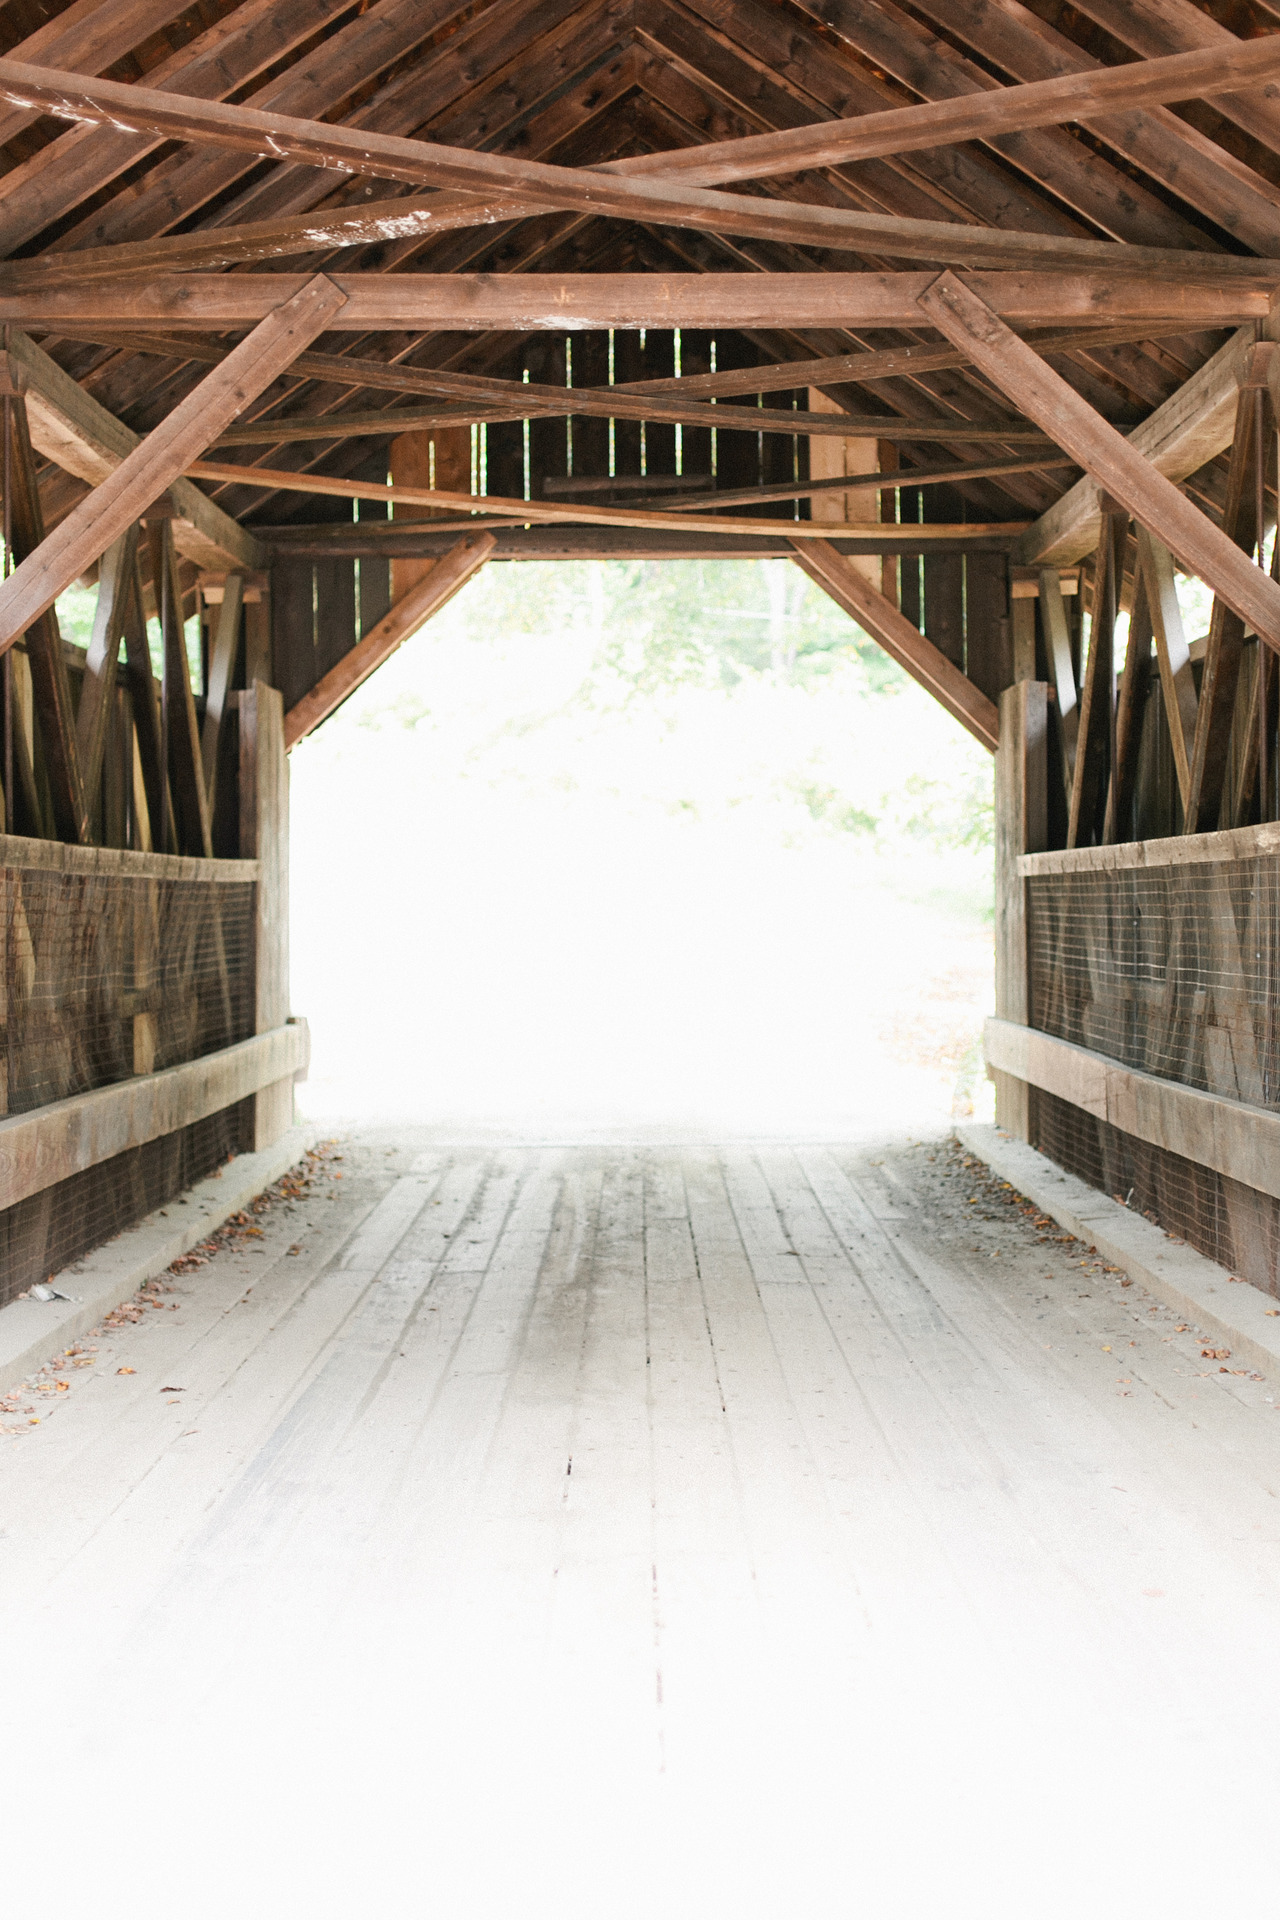 Last week I photographed a portrait session on a covered bridge in Vermont thought to be haunted (Emily's Bridge), and now as I go through the photos I have myself a little spooked.  I just know I'm going to see a ghost in the shadows.  And also I wish I had Photoshop so I could somehow add a ghost to the shots and completely freak these people out when they look through their proofs.